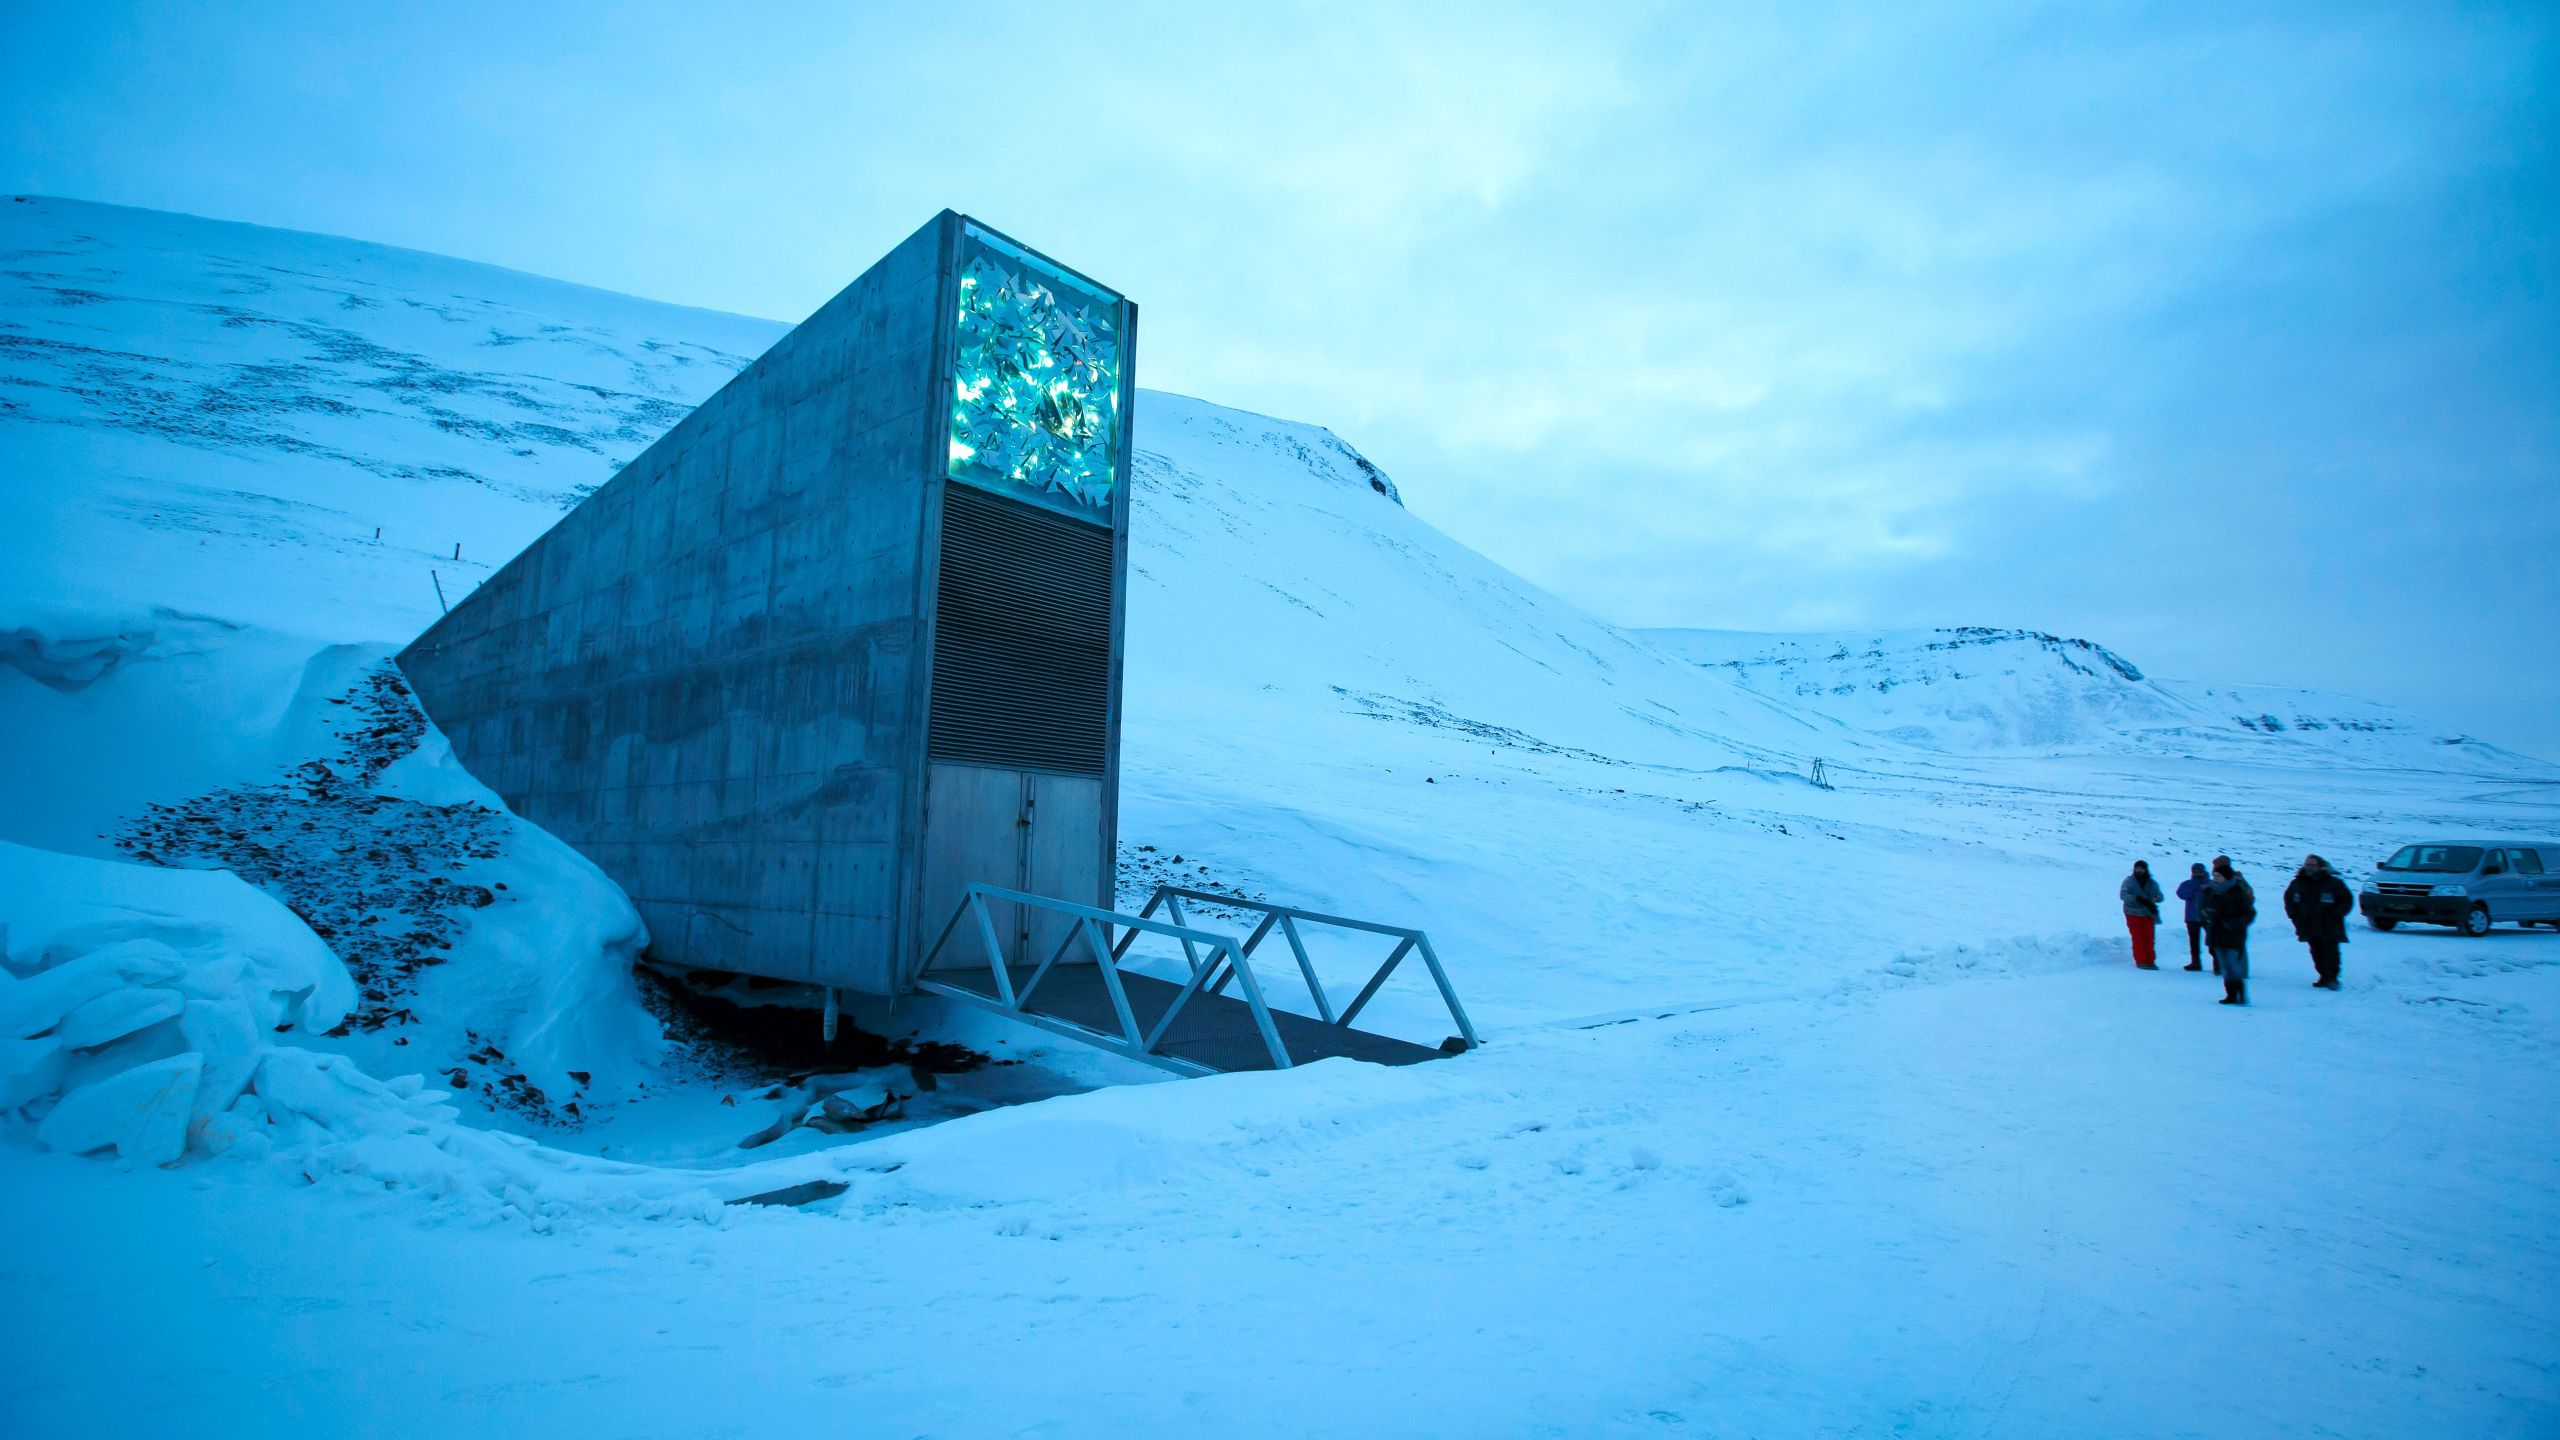 A general view of the entrance of the international gene bank Svalbard Global Seed Vault, outside Longyearbyen in Spitsbergen, Norway, on Feb. 29, 2016. (Credit: Junge, Heiko/AFP/Getty Images)